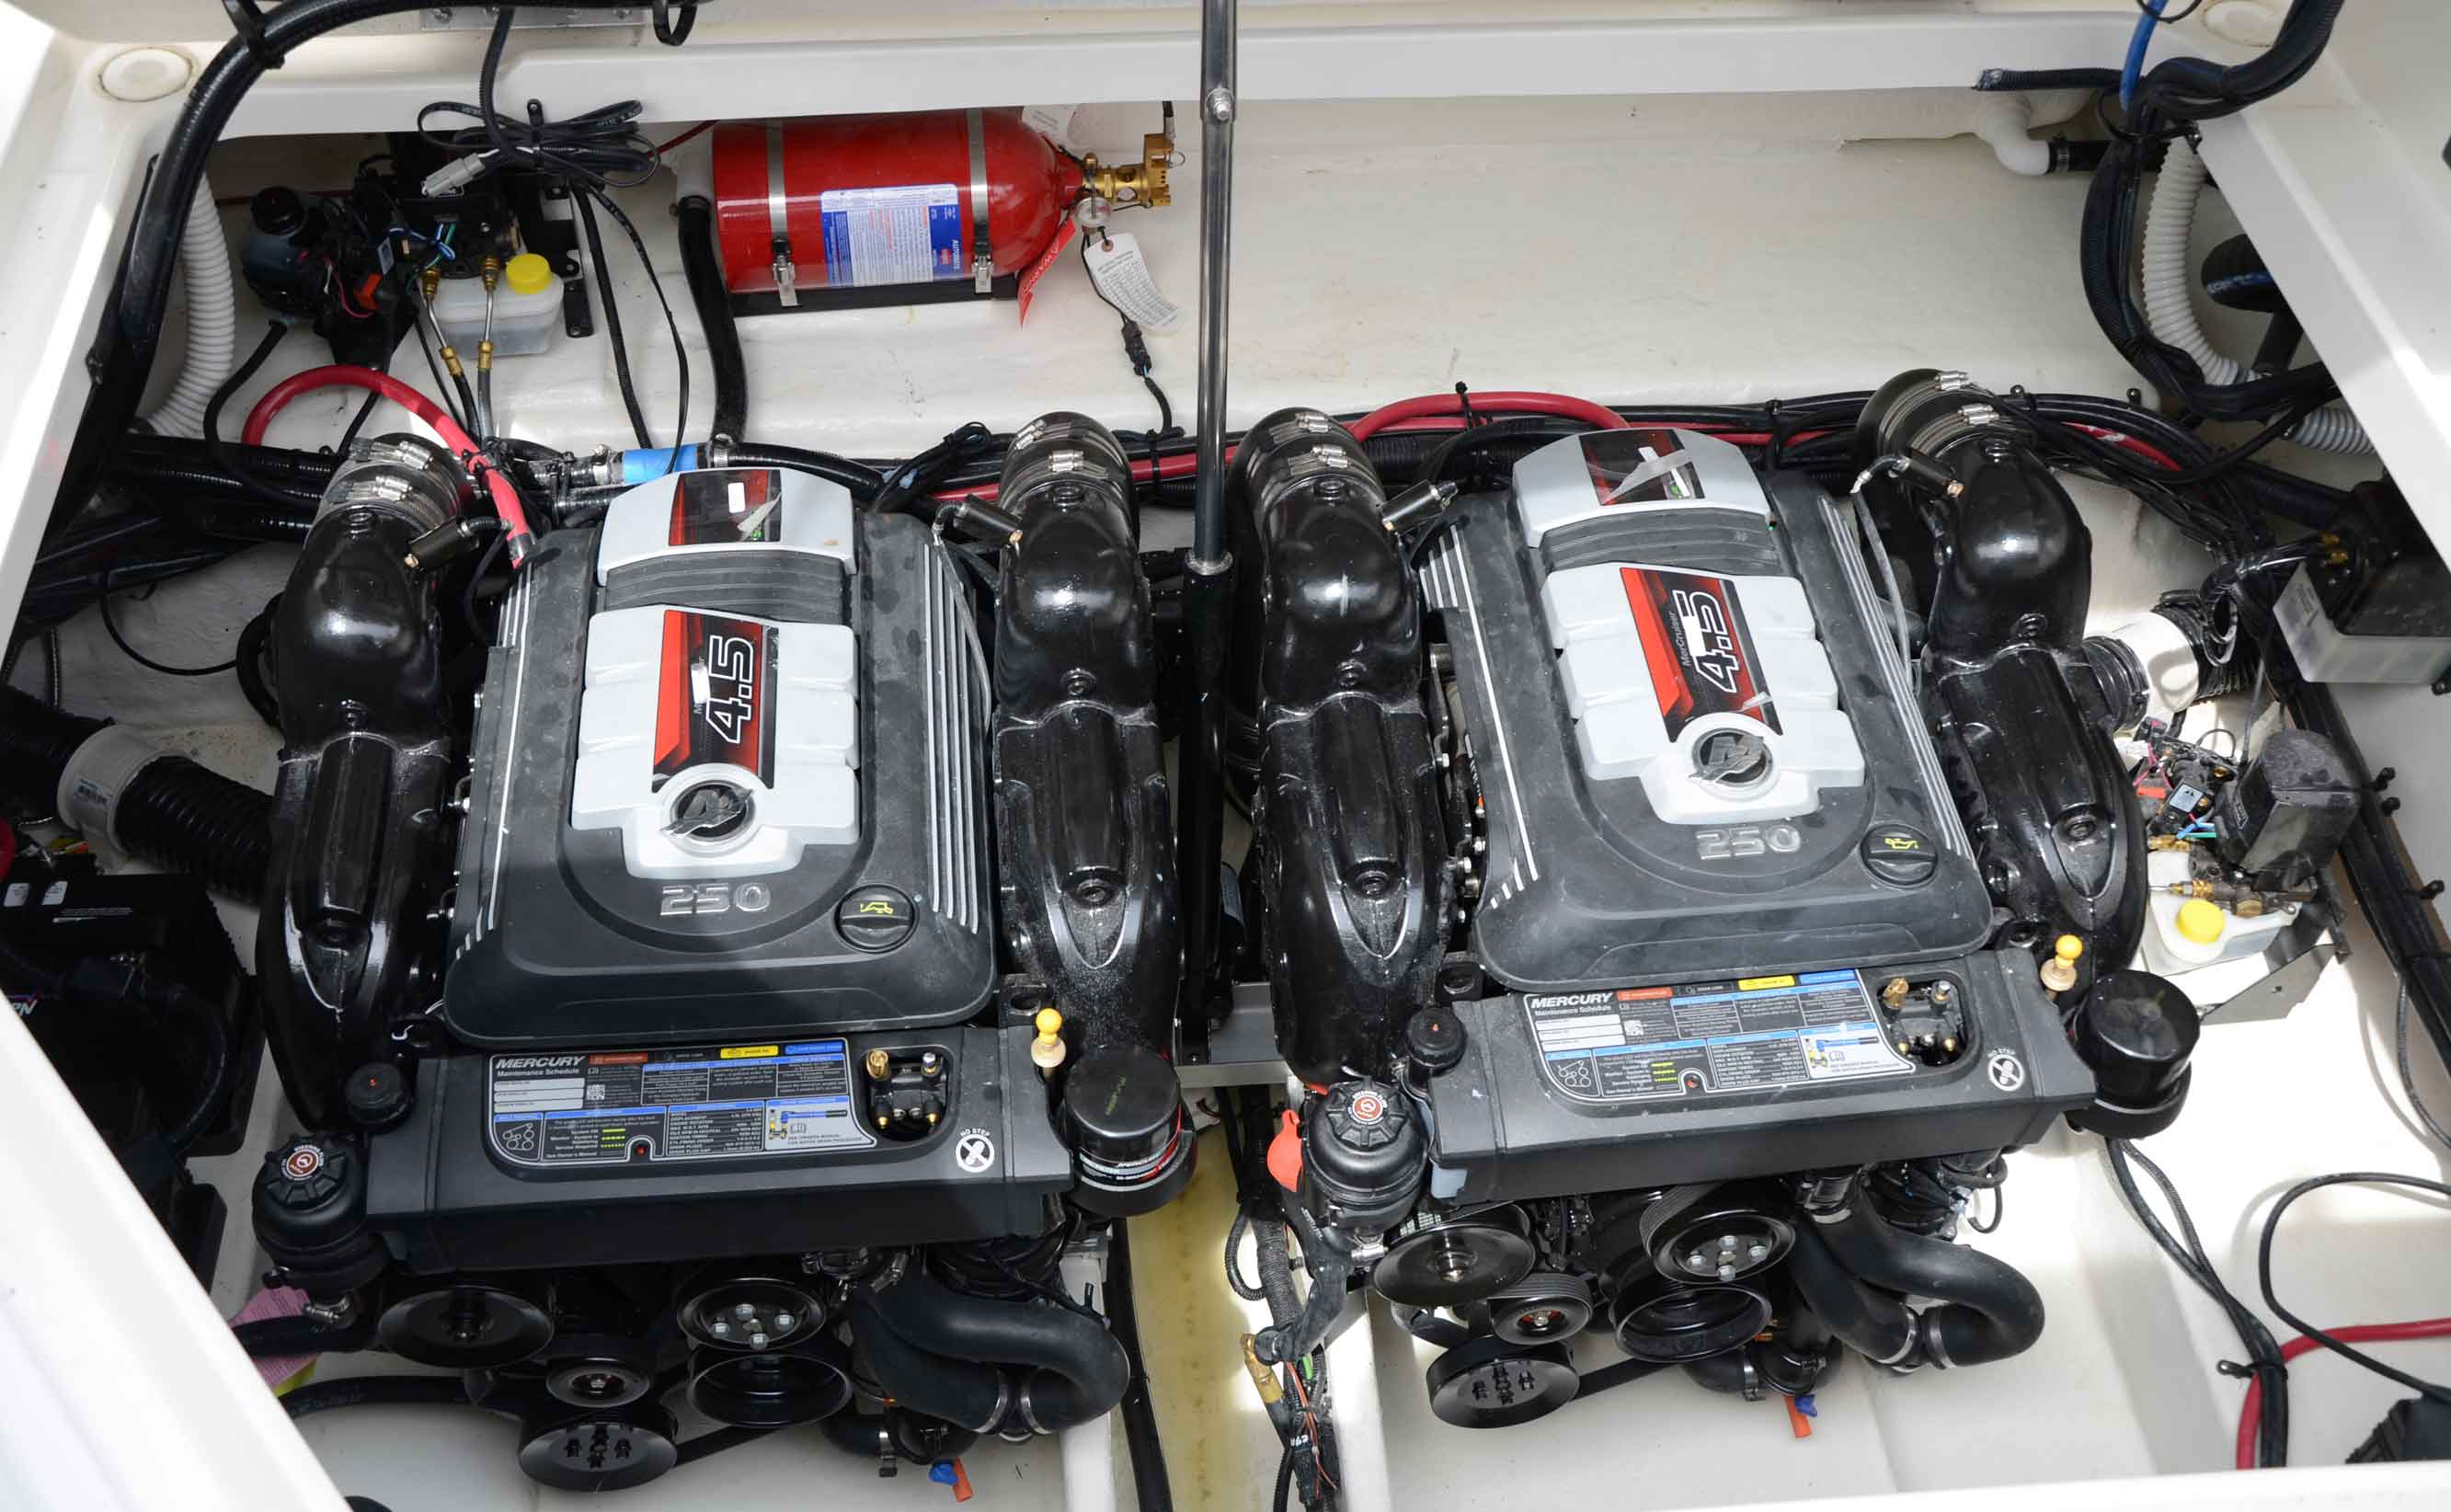 New Mercruiser 4 5L V6 250 Hp: simple, compact, strong - Boatmag